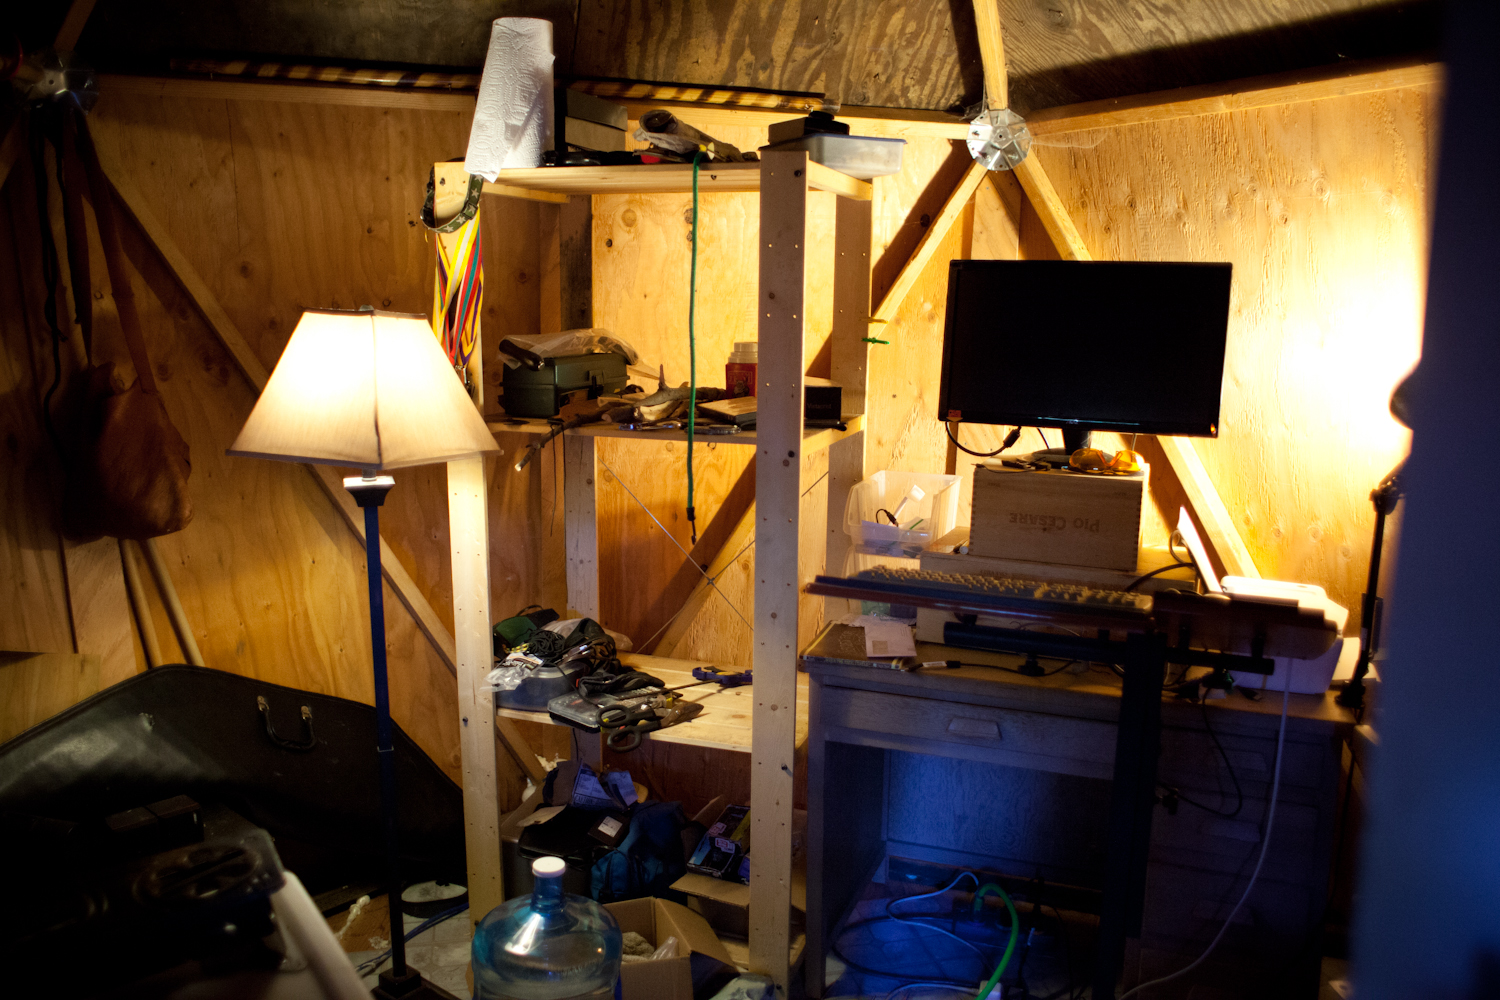 Colin's standing workstation helps improve posture and focus when working on the computer.